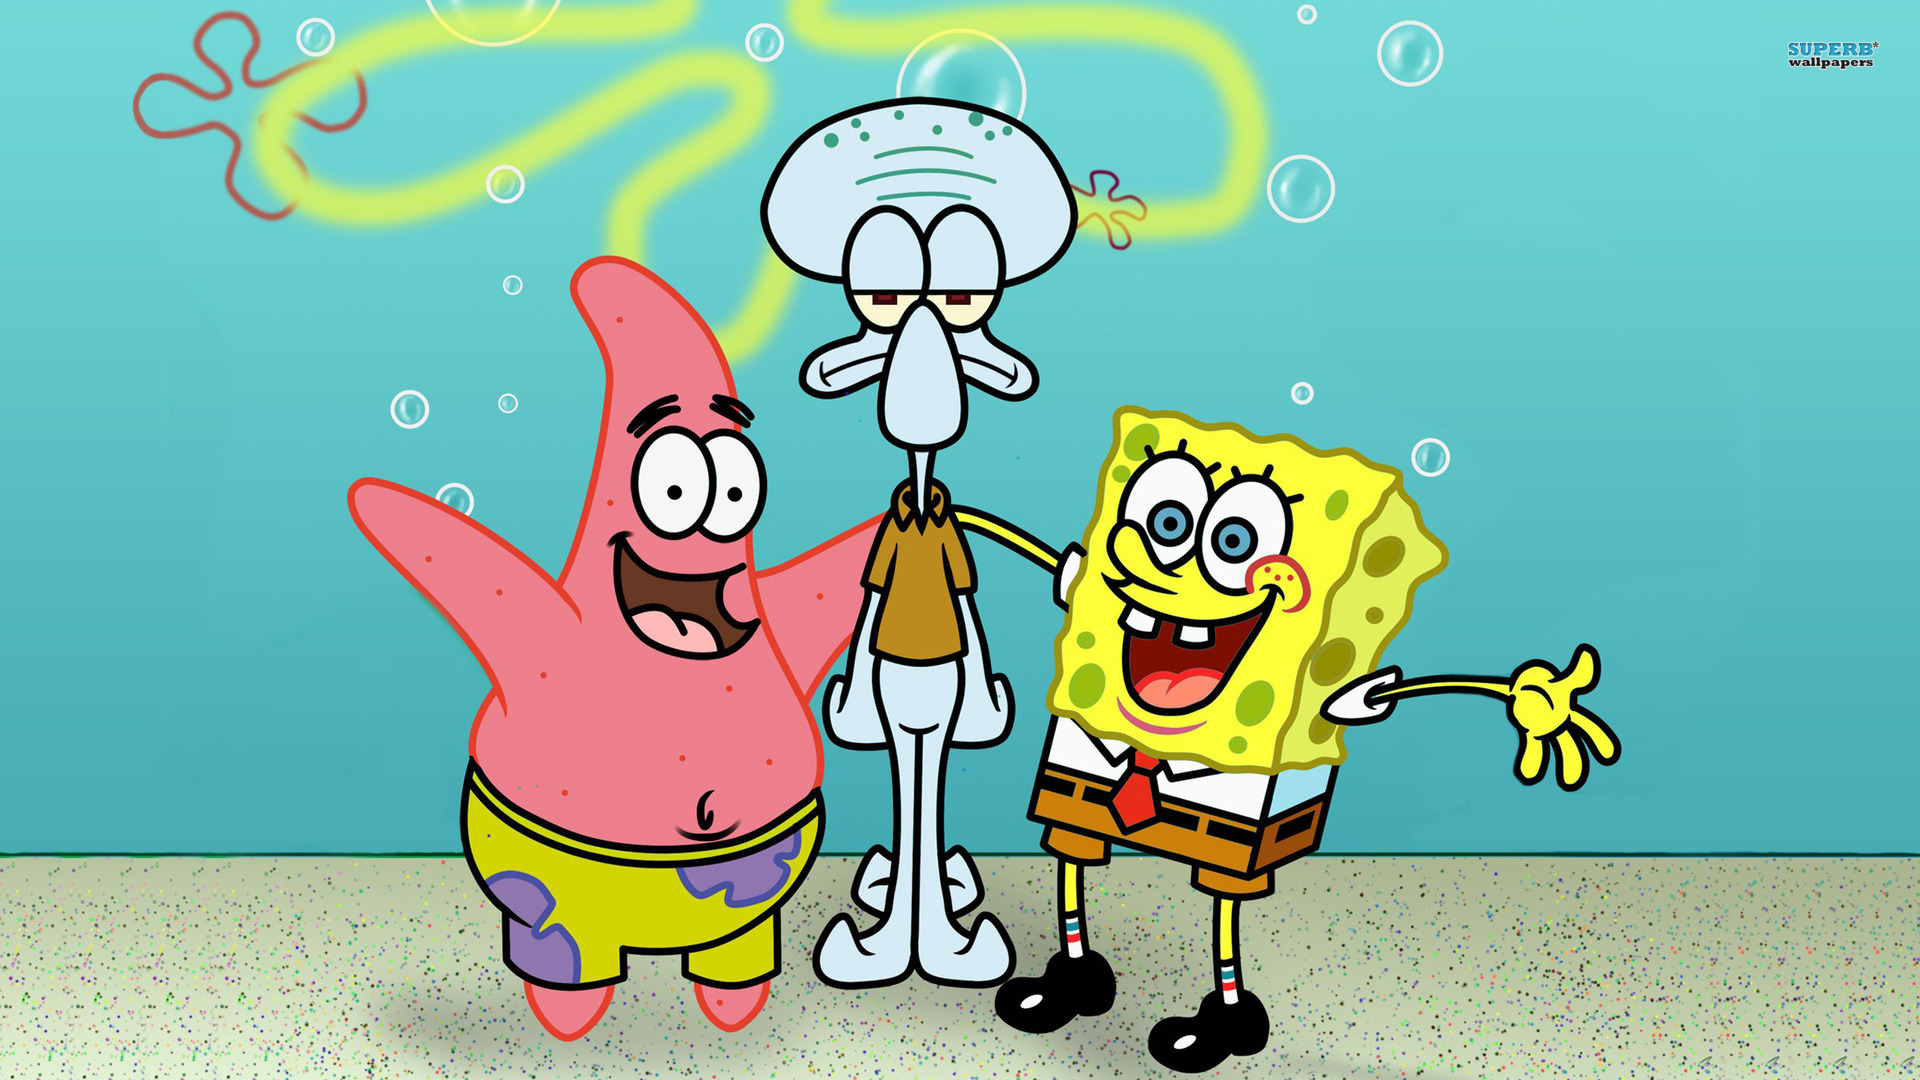 Patrick Star SpongeBob SquarePants Cartoon